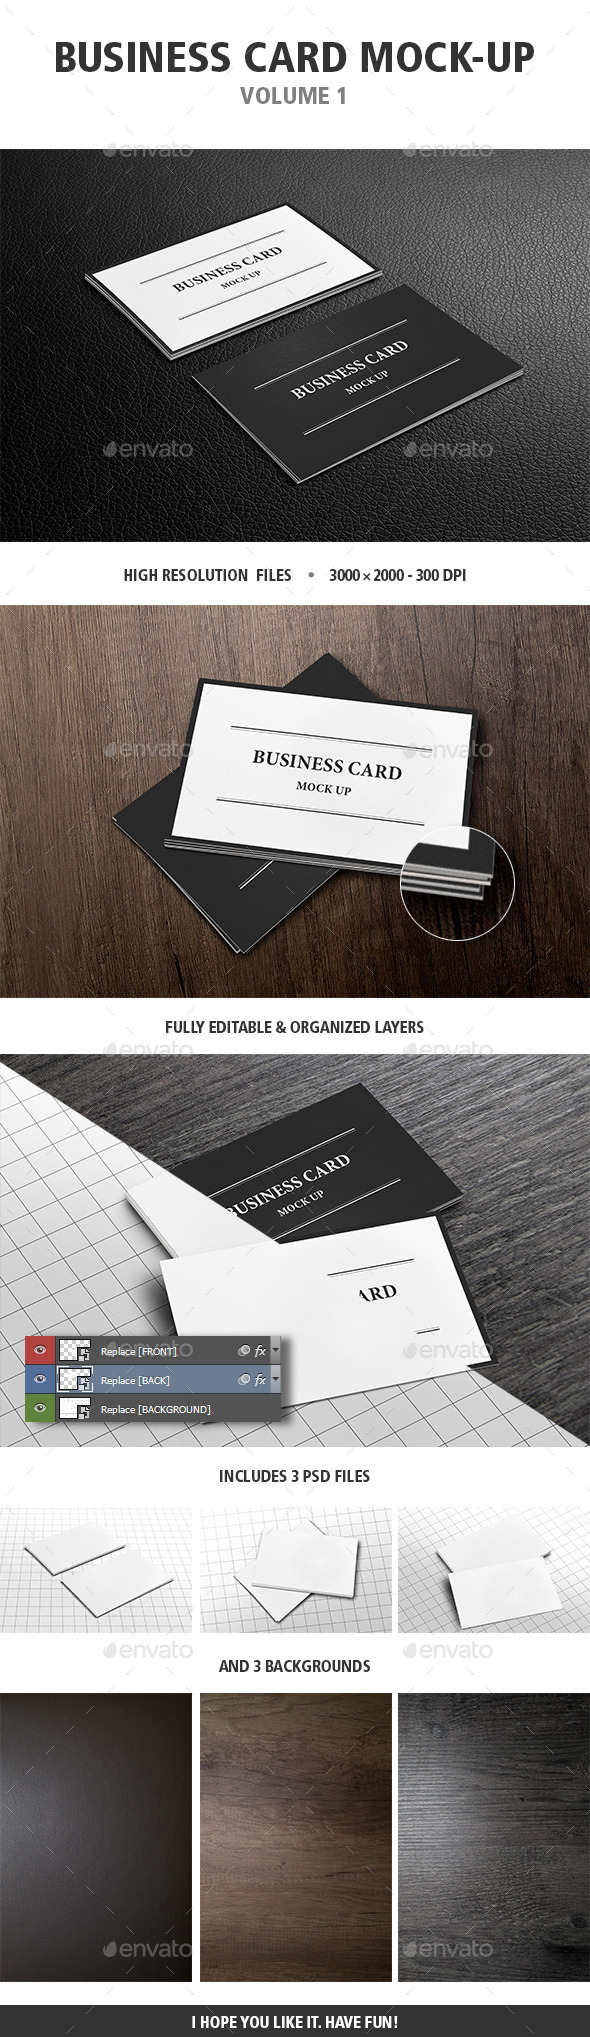 GraphicRiver Business Card Mock-Up Vol 1 11498739